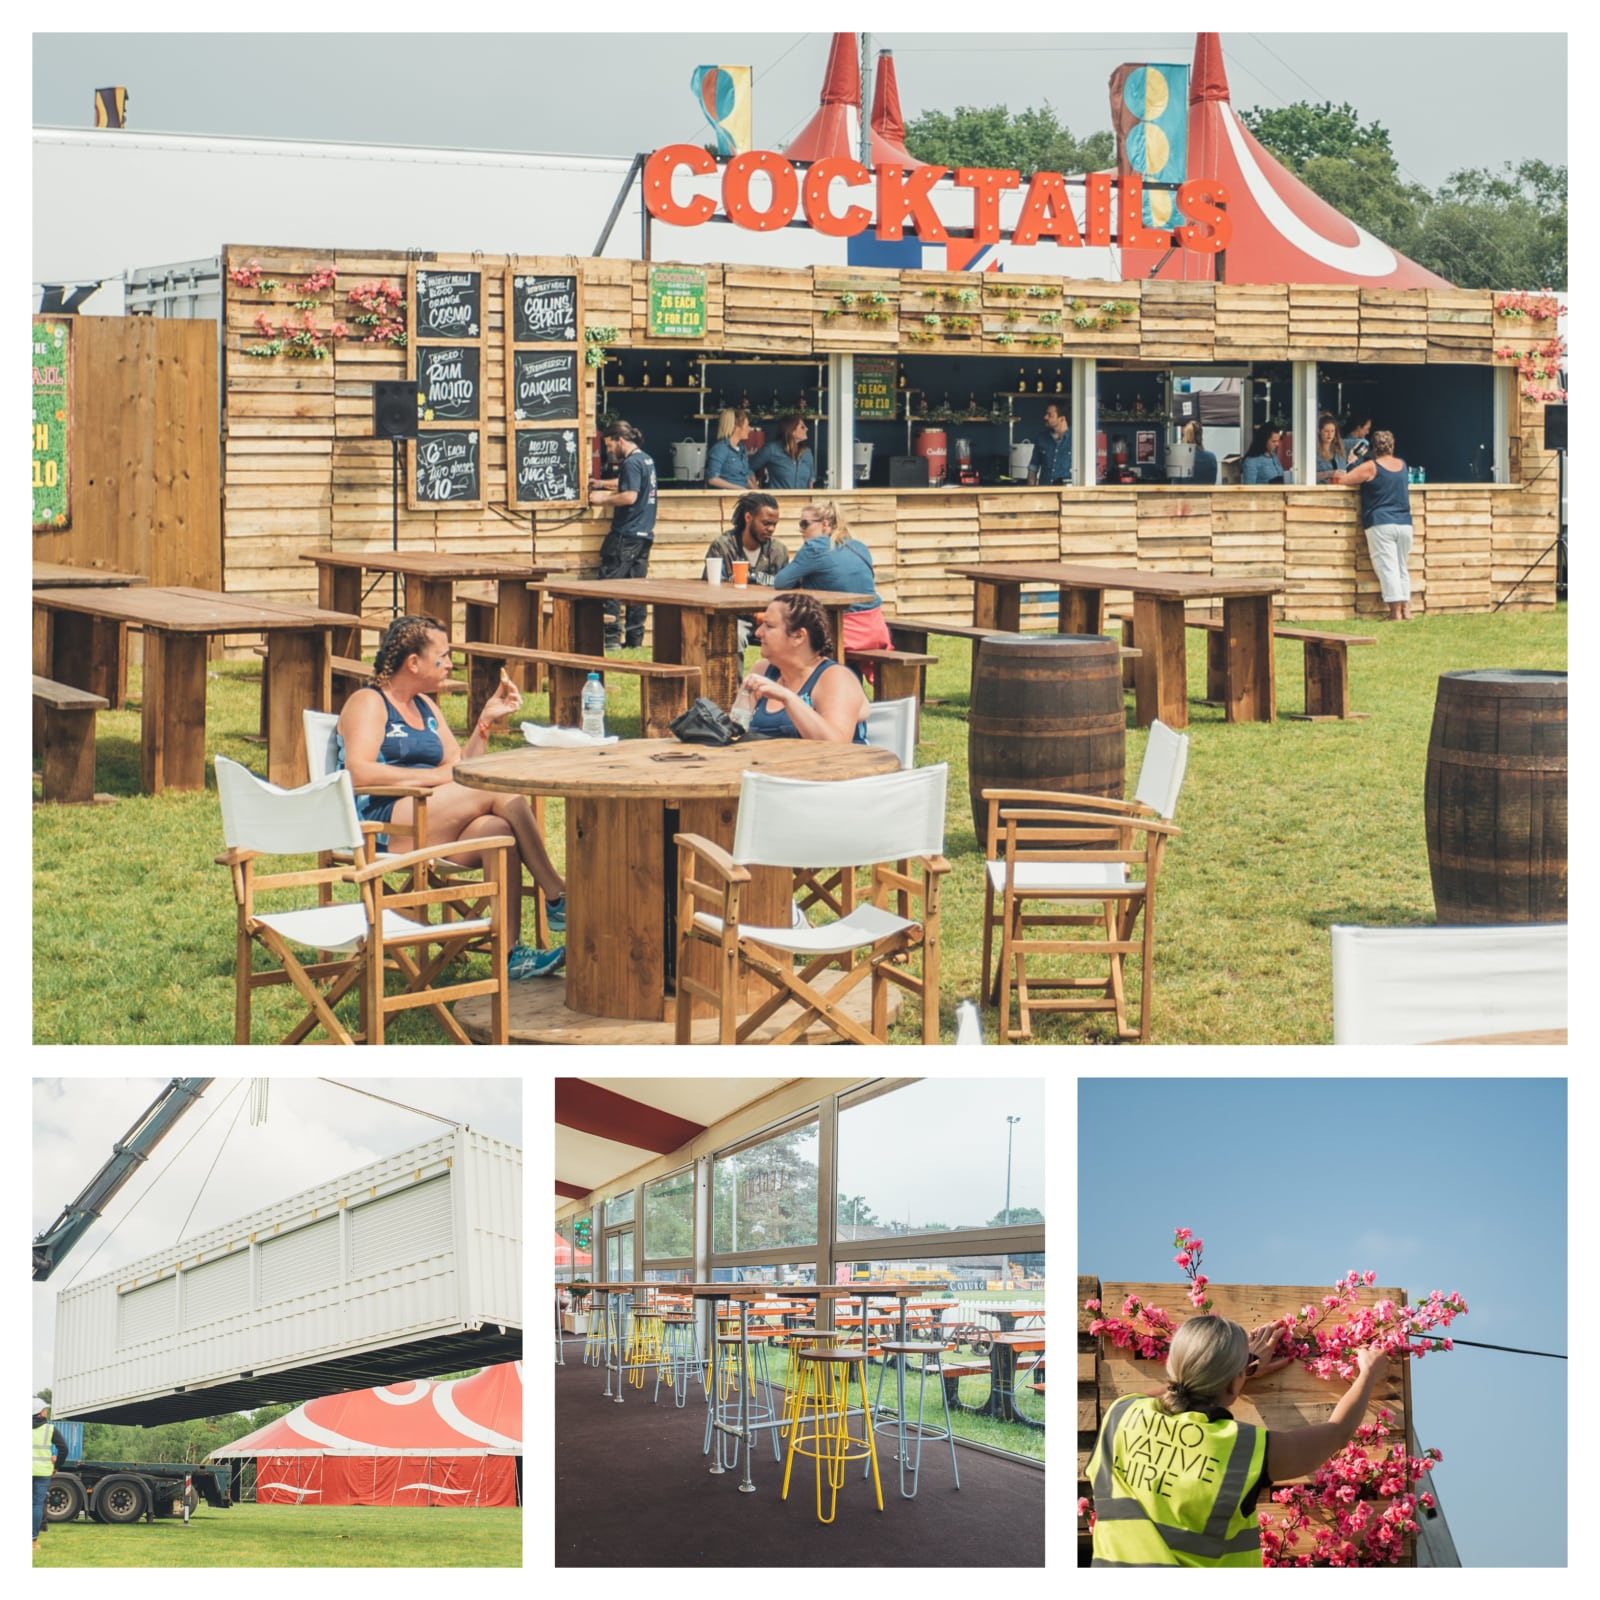 Innovative Hire Awarded Bar And Furniture Contract At Bournemouth 7s Festival 2018 Dorset Chamber Of Commerce And Industry